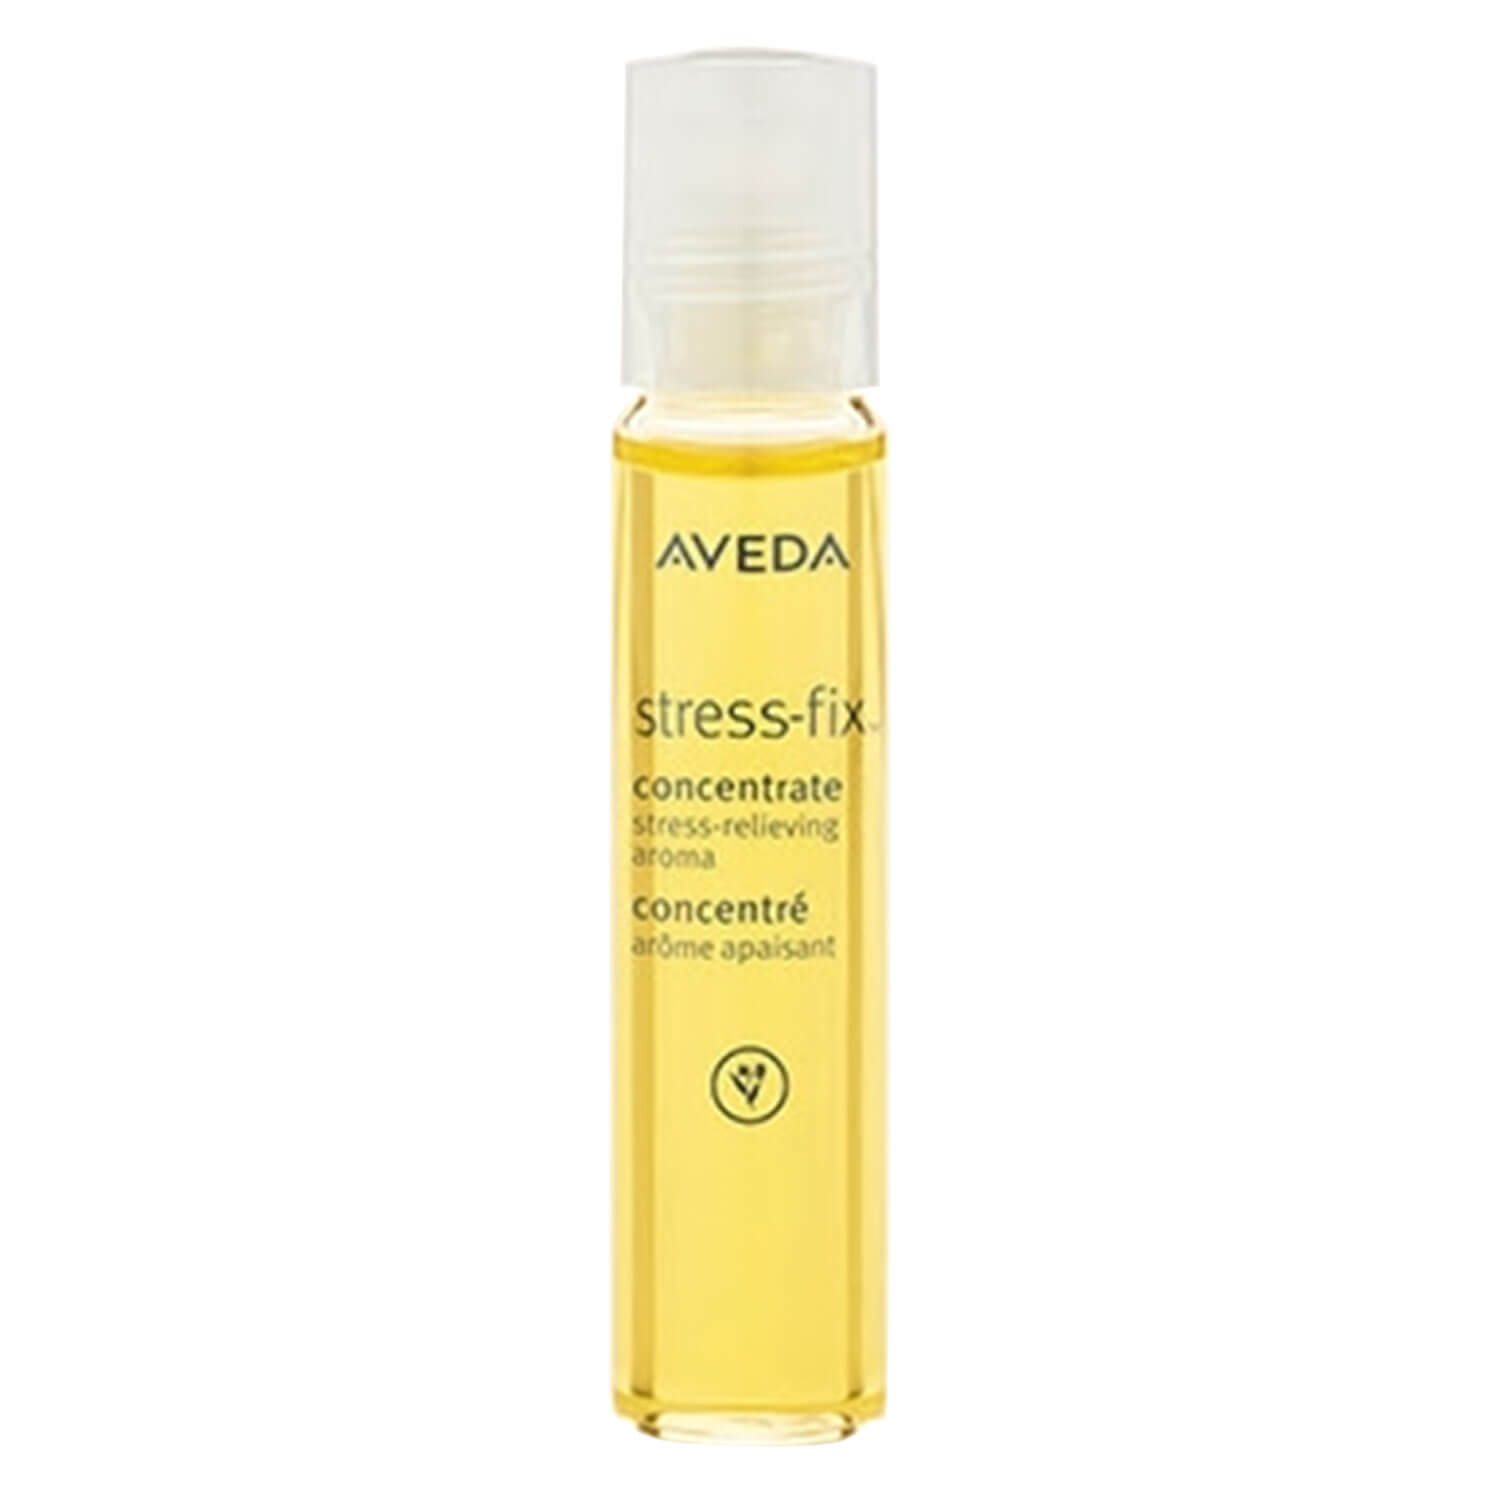 stress-fix - concentrate rollerball